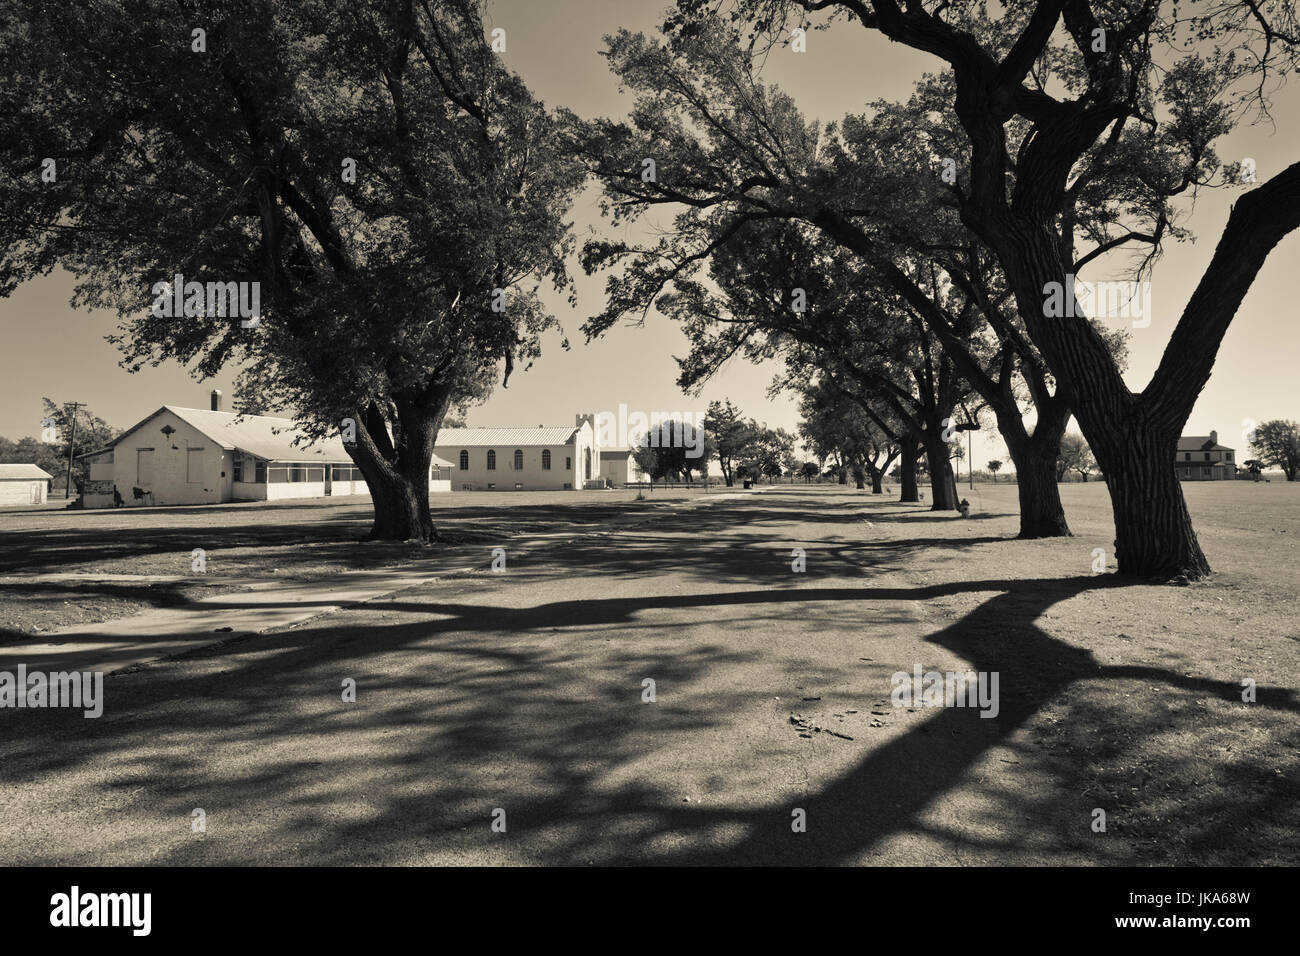 USA, Oklahoma, El Reno, Fort Reno, former Indian Wars military outpost and POW camp for German prisoners in World - Stock Image